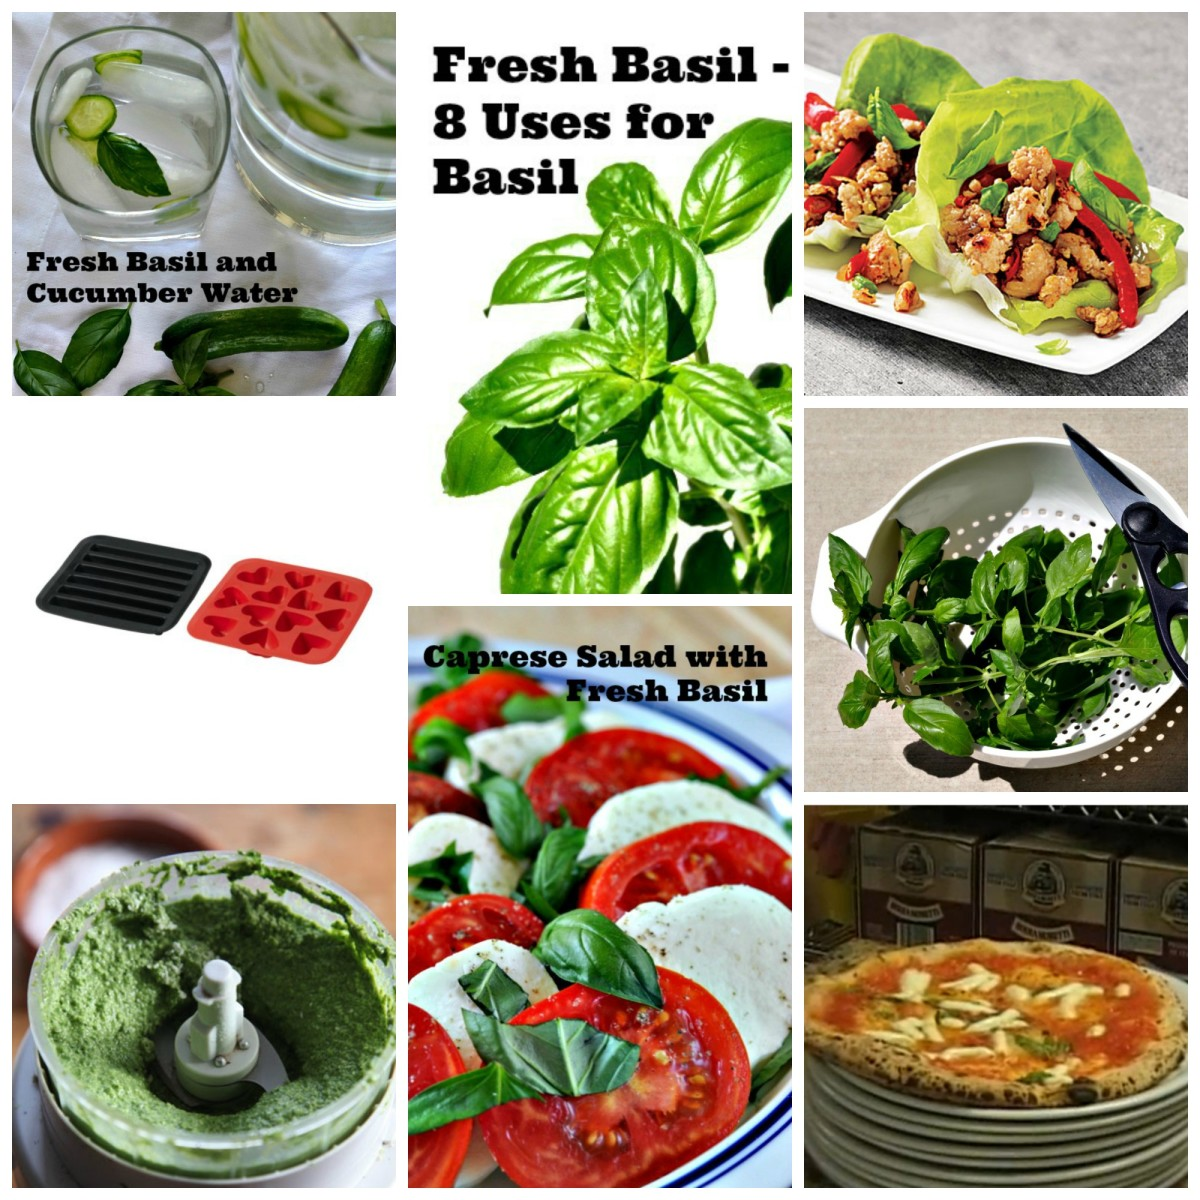 Fresh Basil - 8 Uses